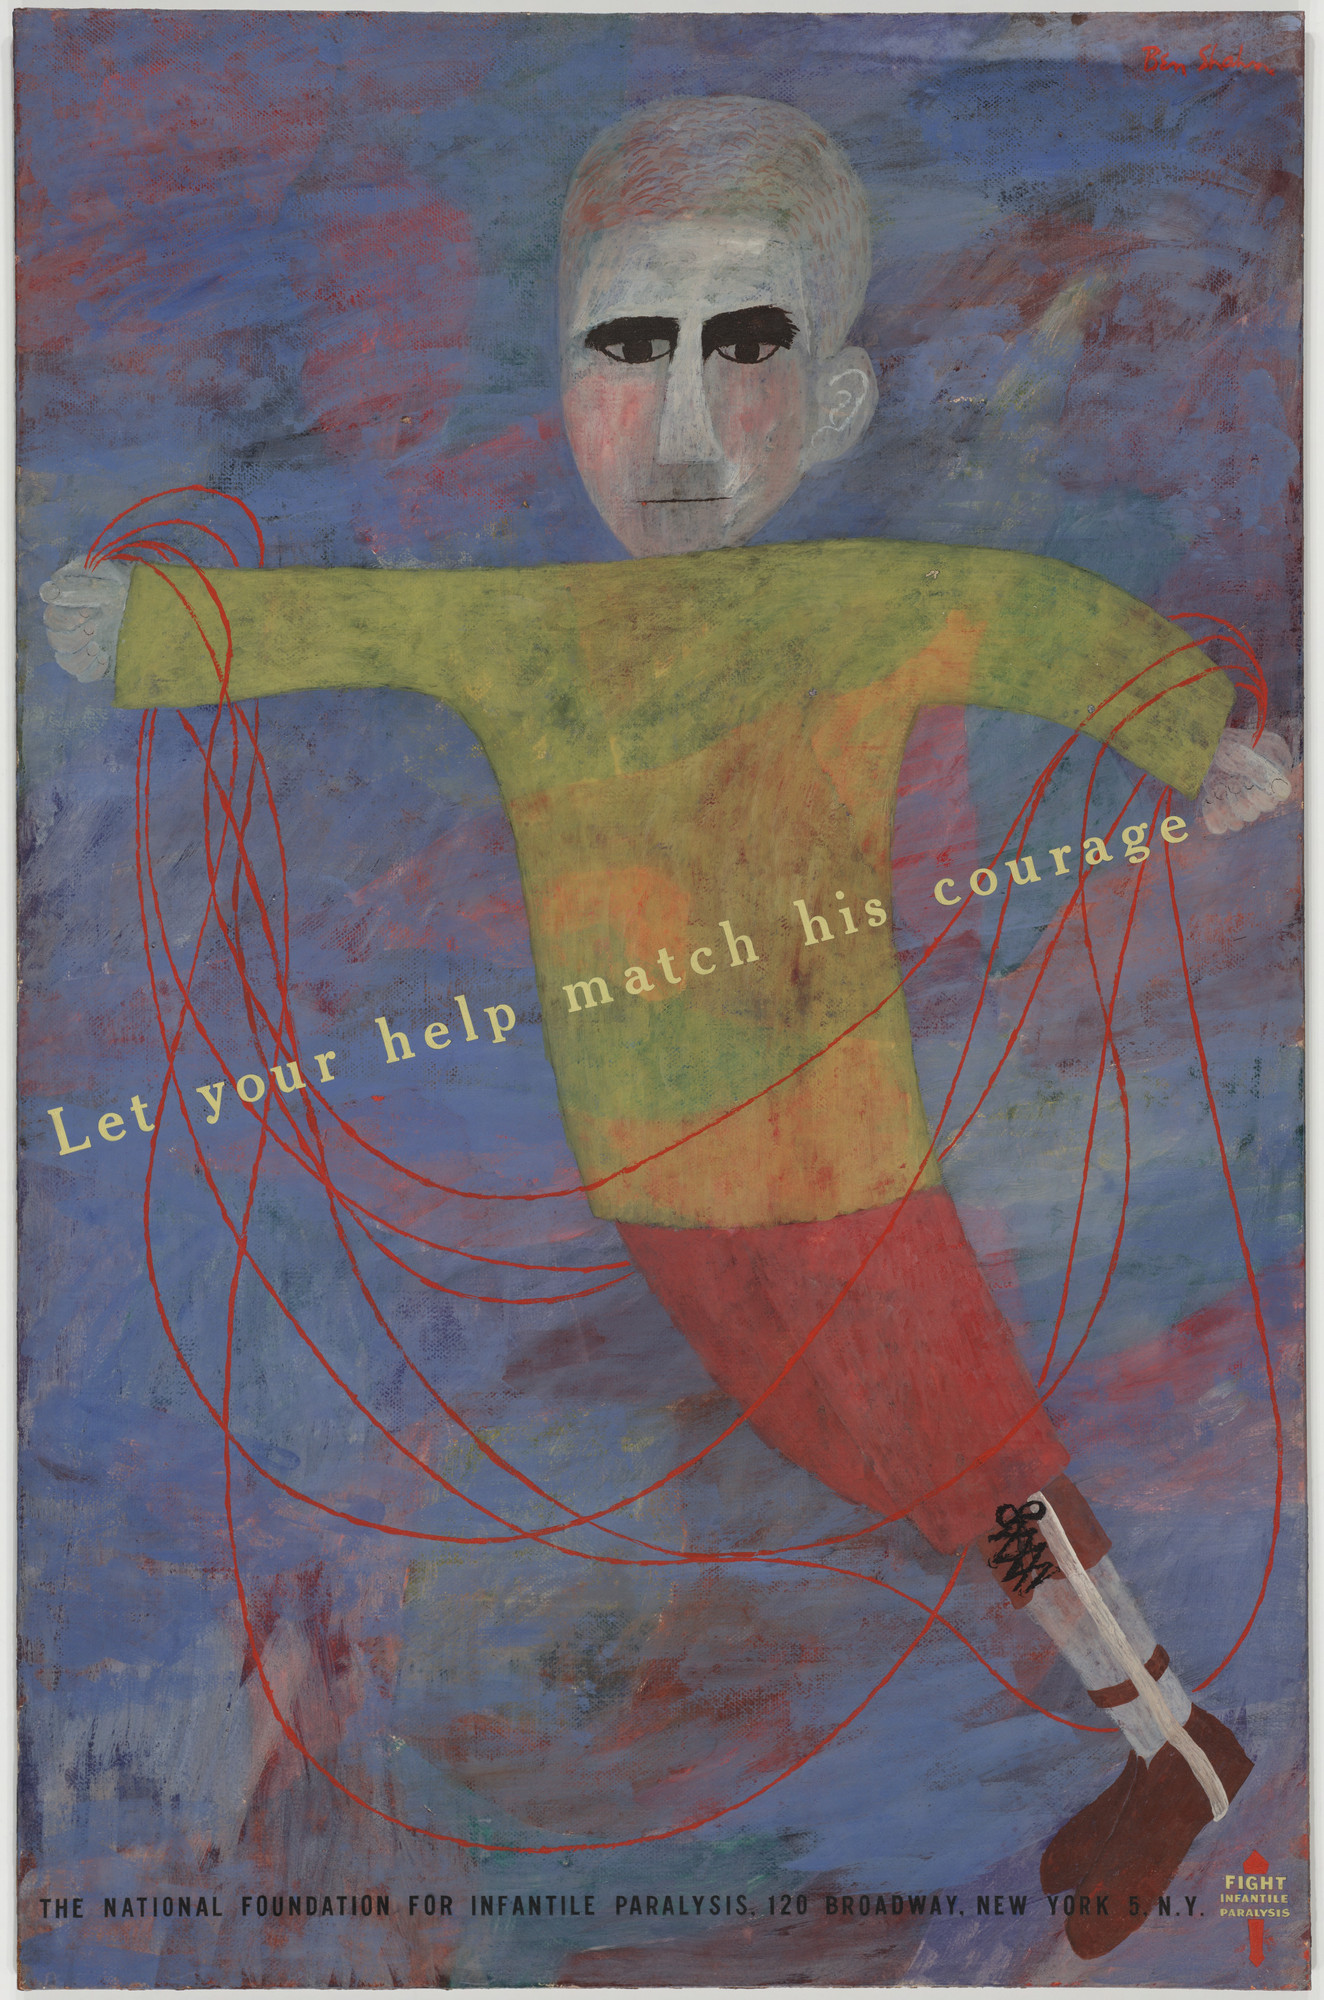 Ben Shahn. Let Your Help Match His Courage. 1949